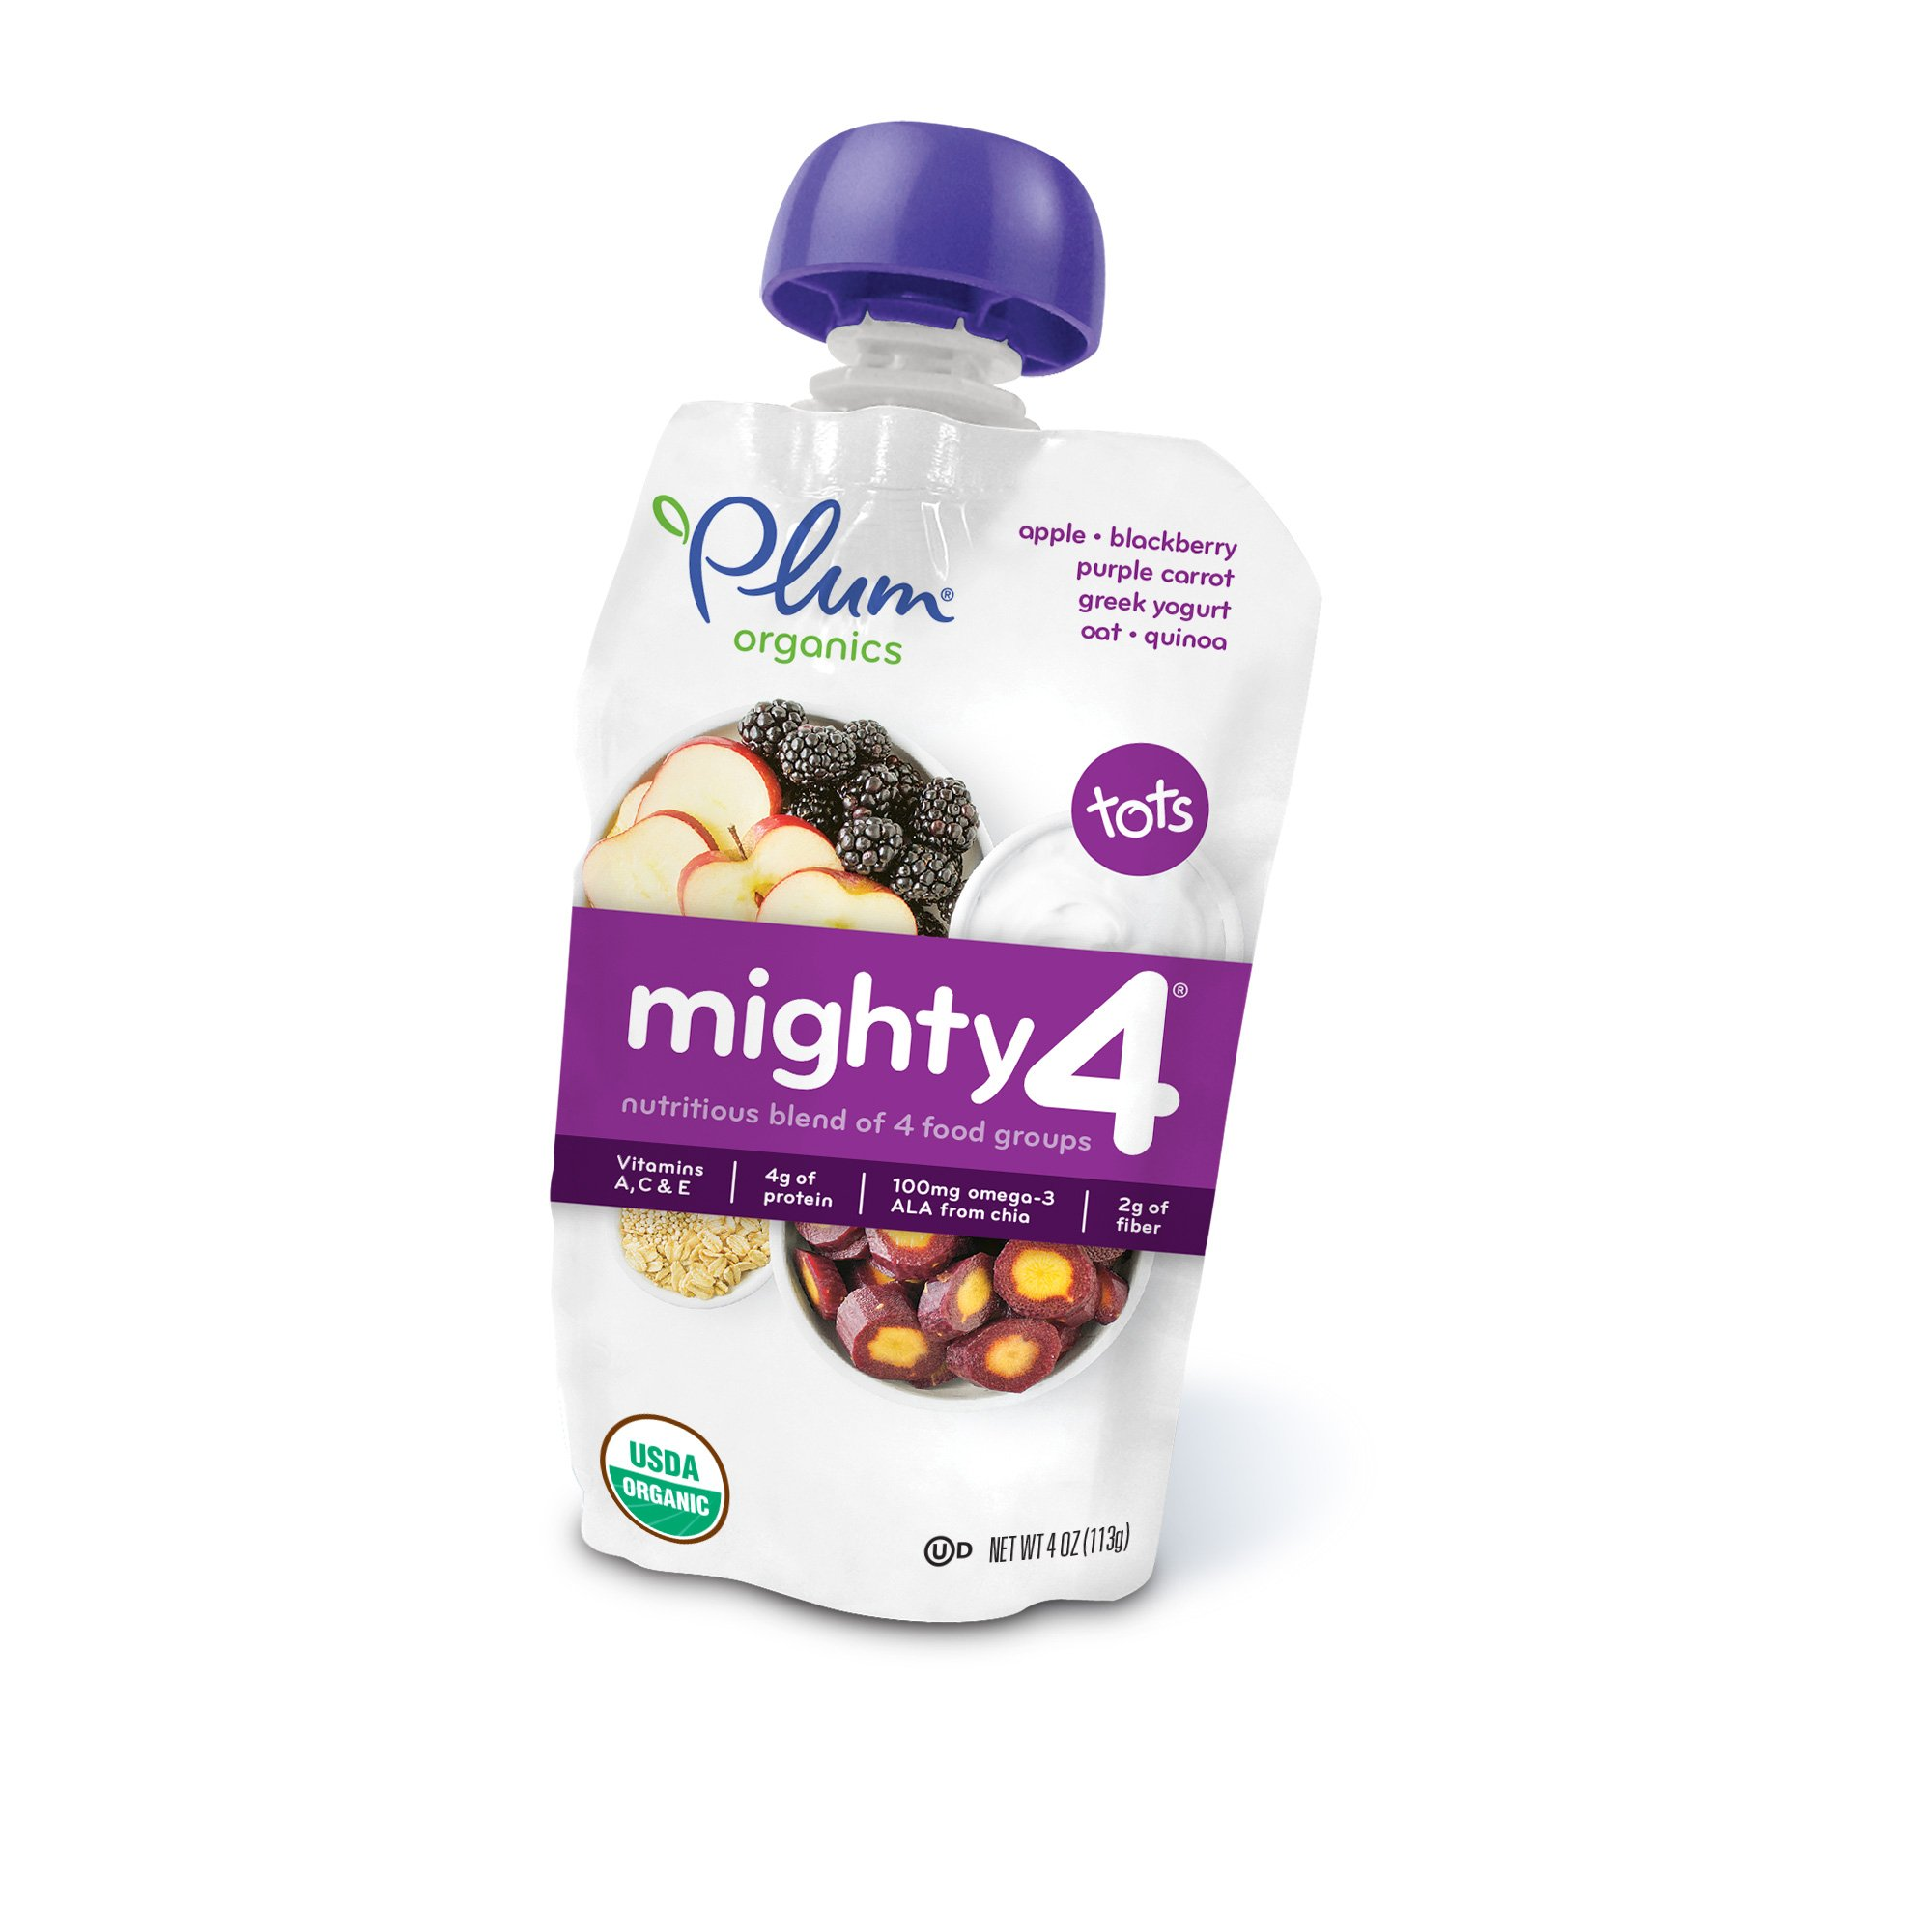 Plum Organics Mighty 4, Organic Toddler Food, Apple, Blackberry, Purple Carrot, Greek Yogurt, Oat and Quinoa,4 Ounce Pouch (Pack of 12)